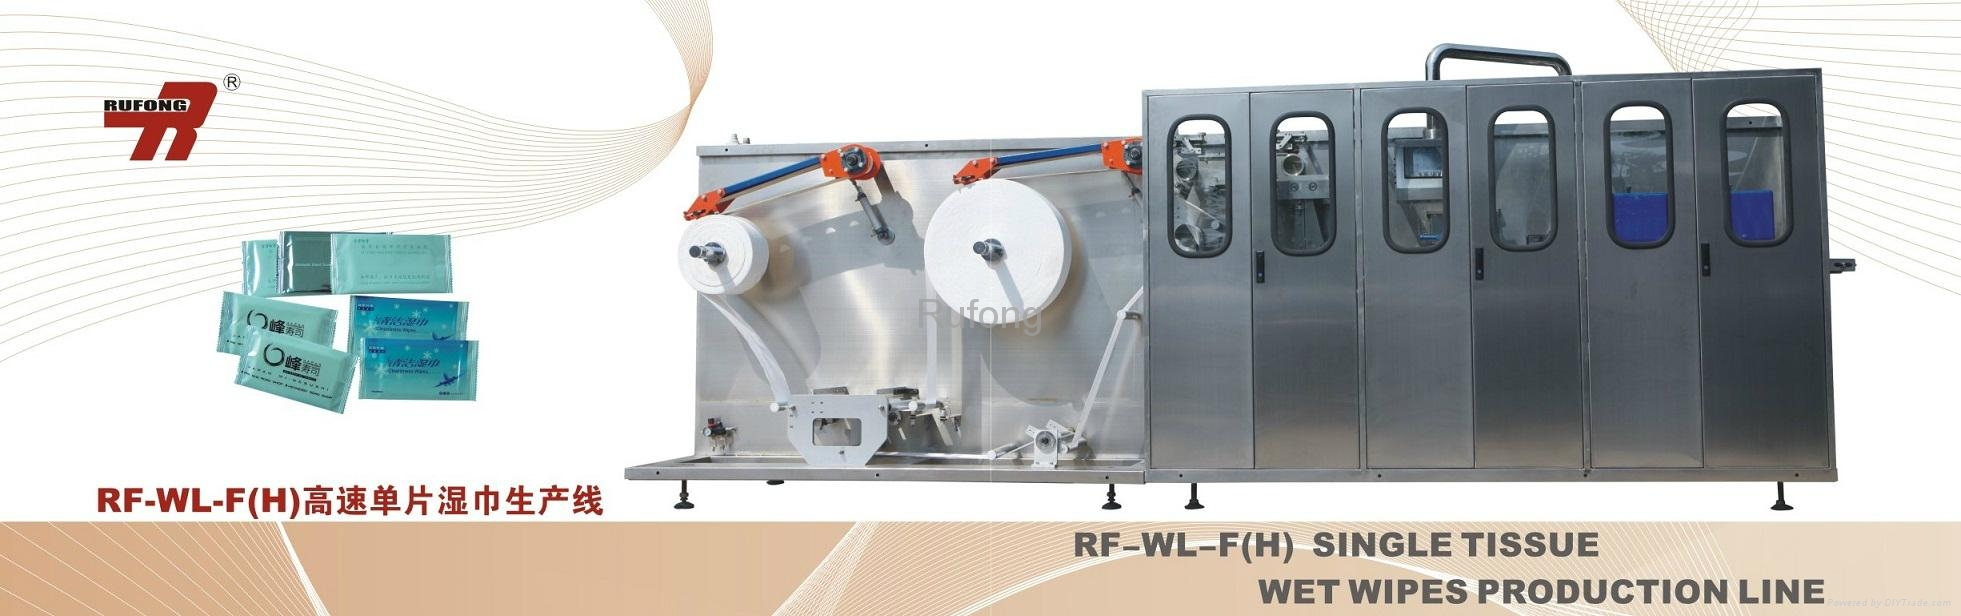 RF-WL-F(H) High Speed Single Tissue Wet Wipes Production Line 2